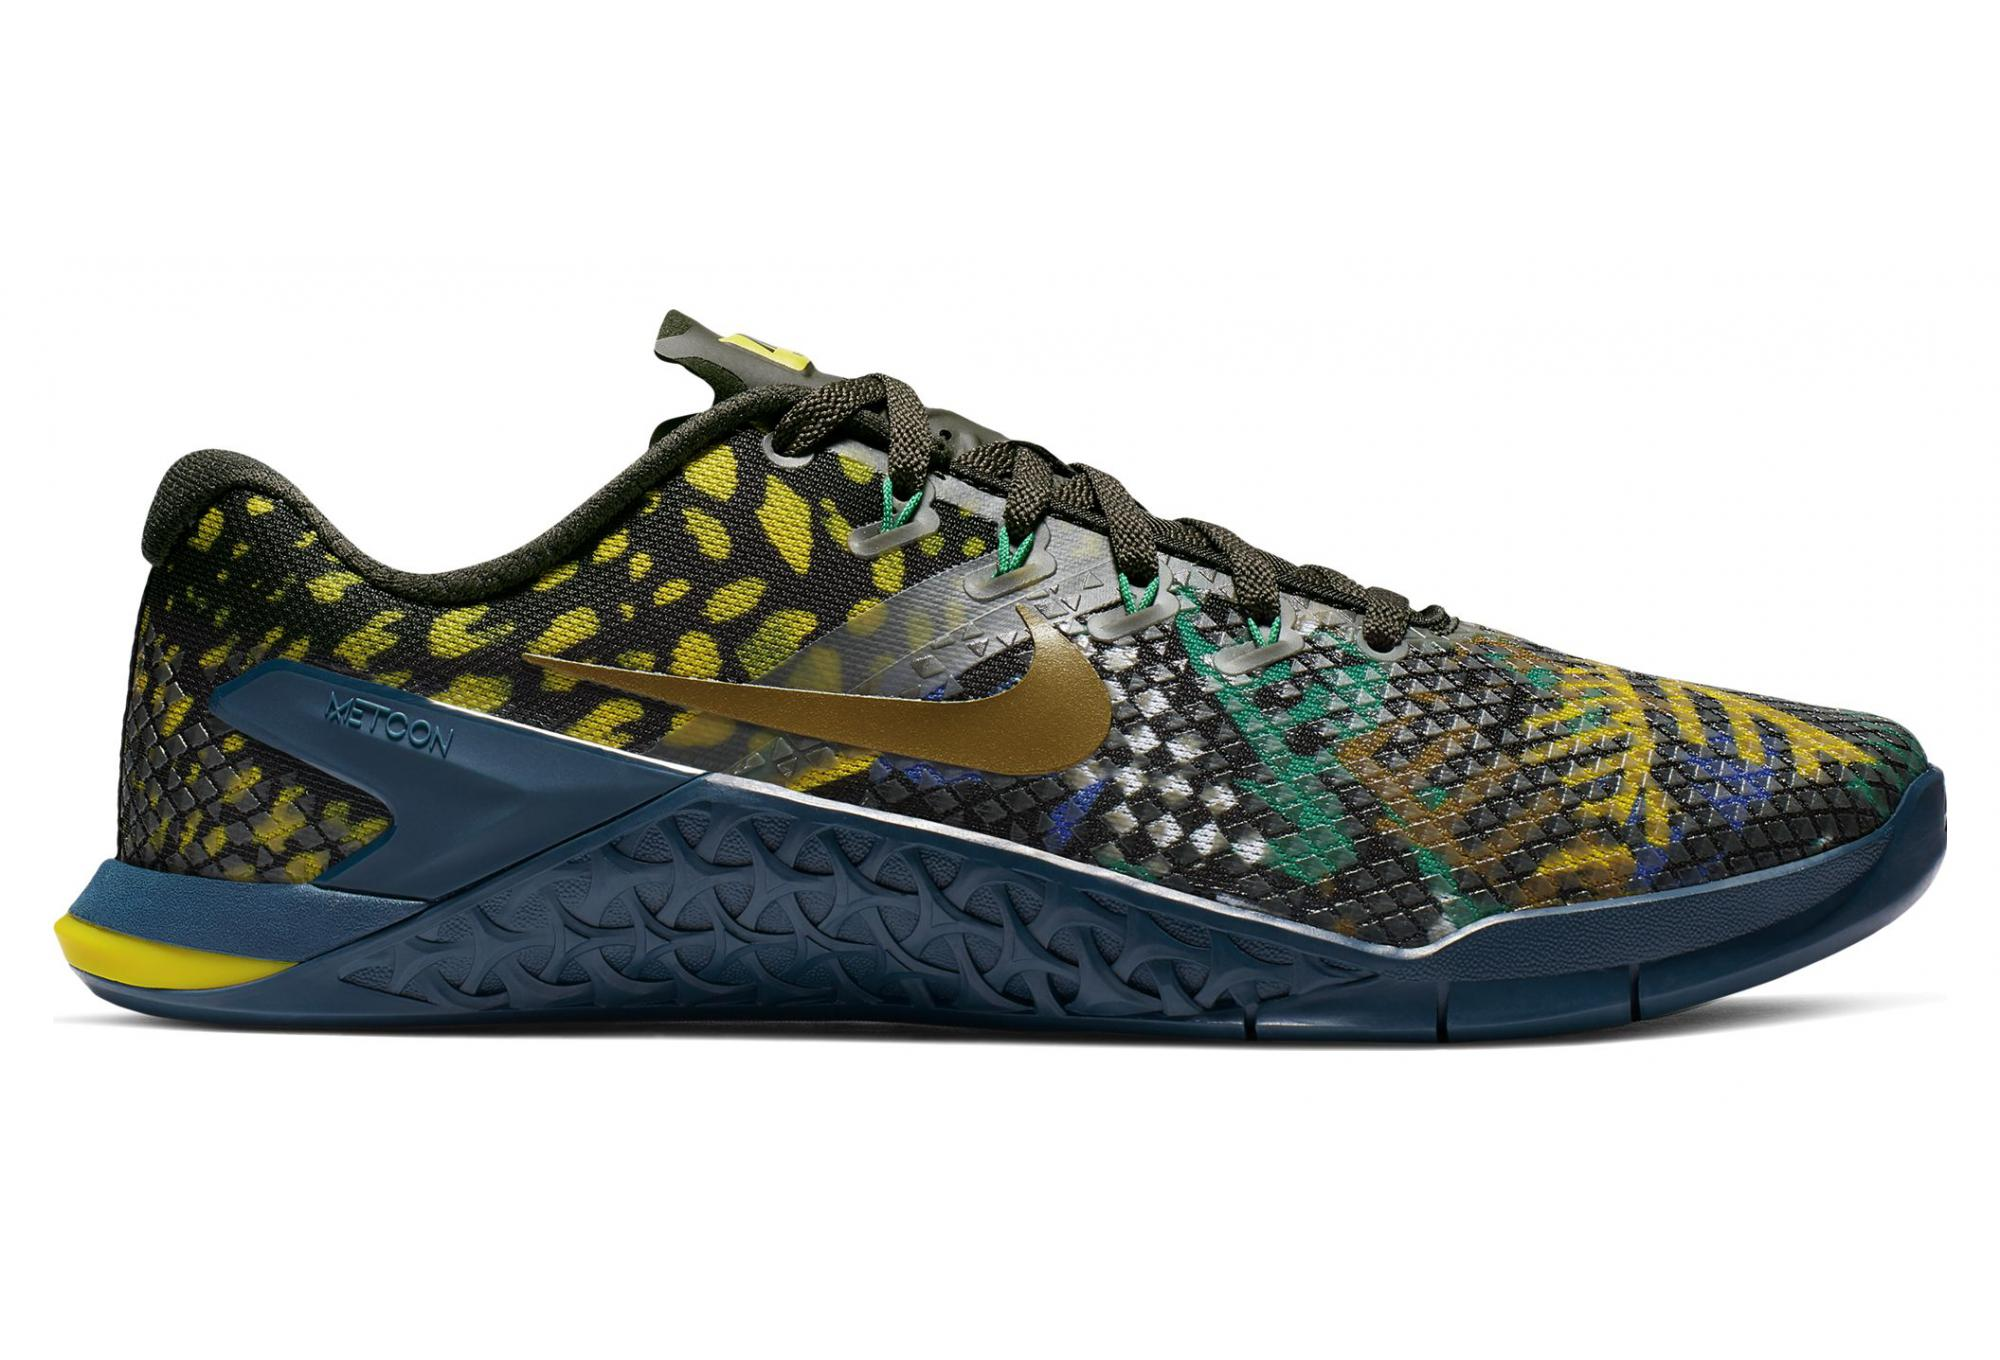 Nike Metcon 4 XD Multi color Men